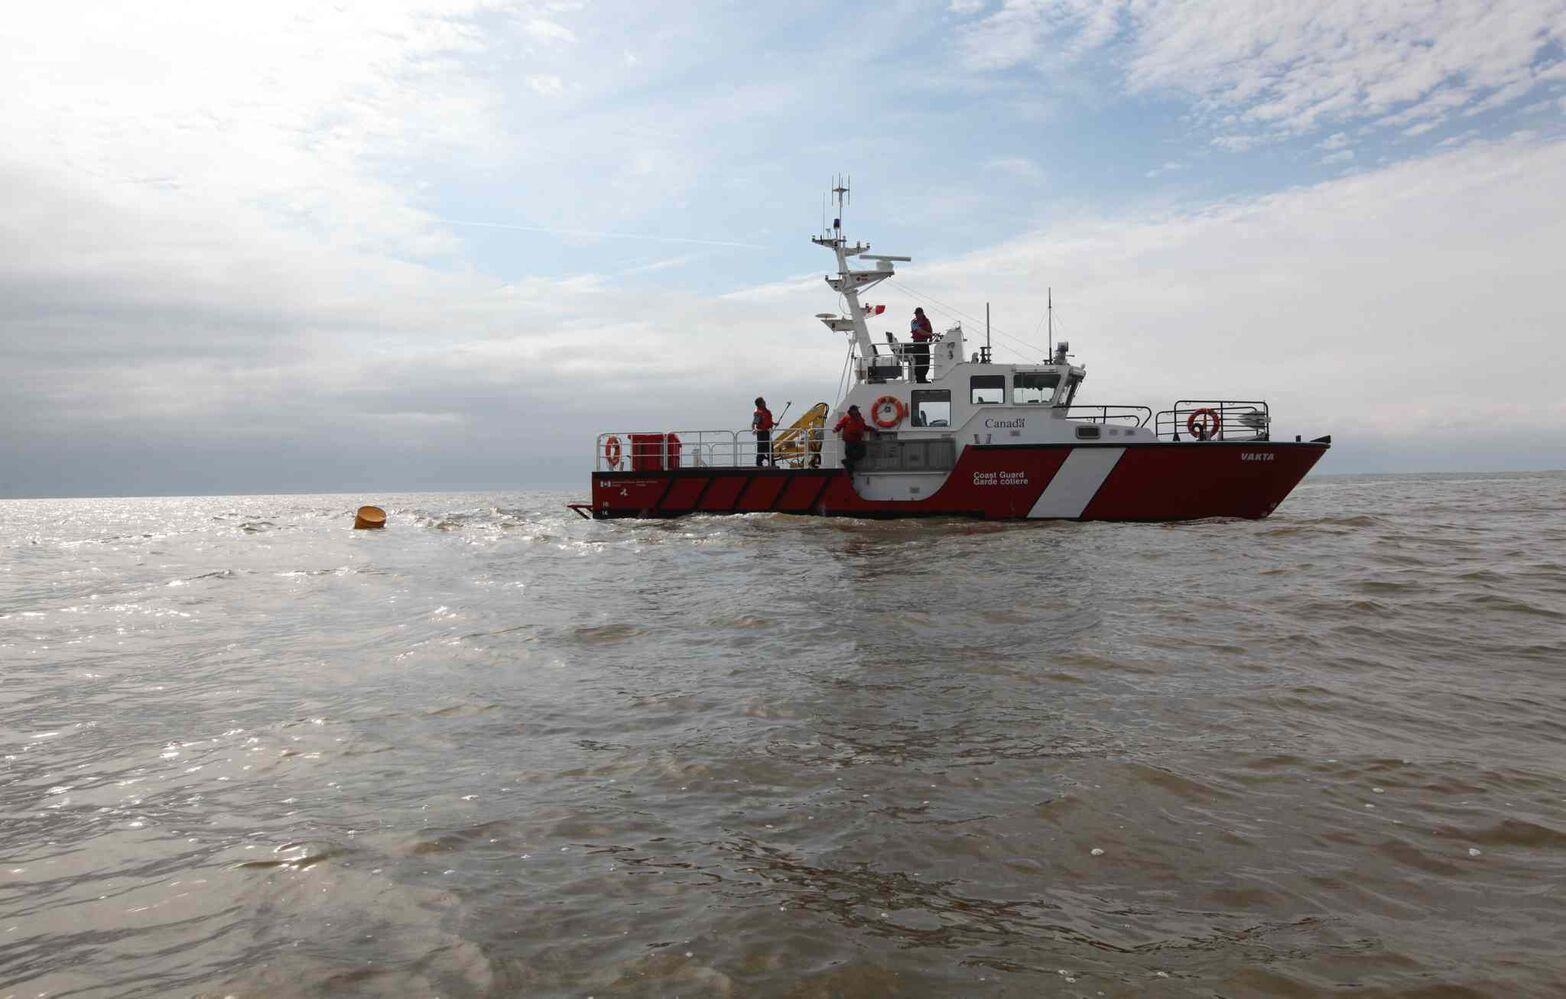 A coast guard vessel patrols the waters of Lake Winnipeg.